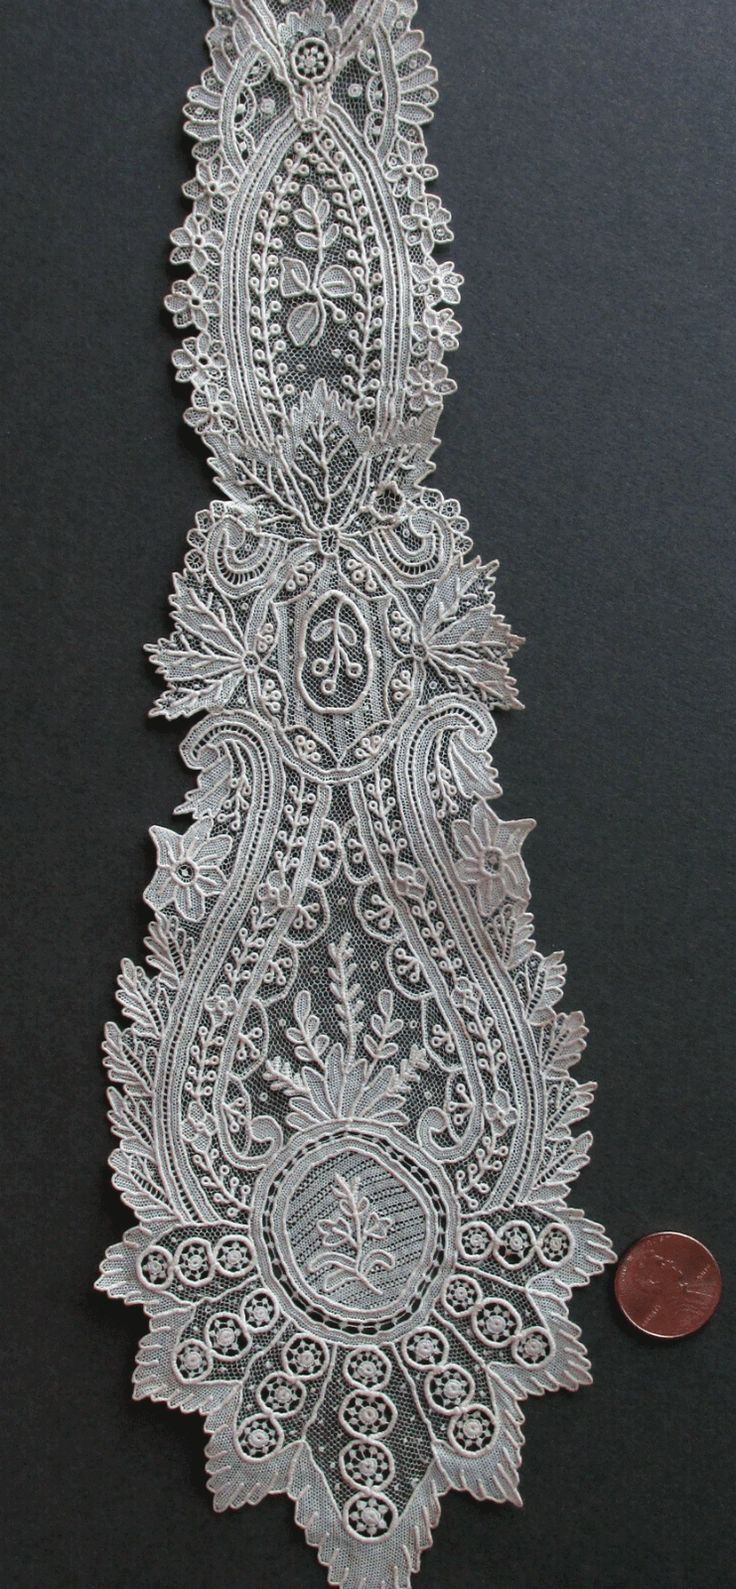 Mid 19th C Point de Gaze Needle Lace Lappets Collector Unusual Design | eBay